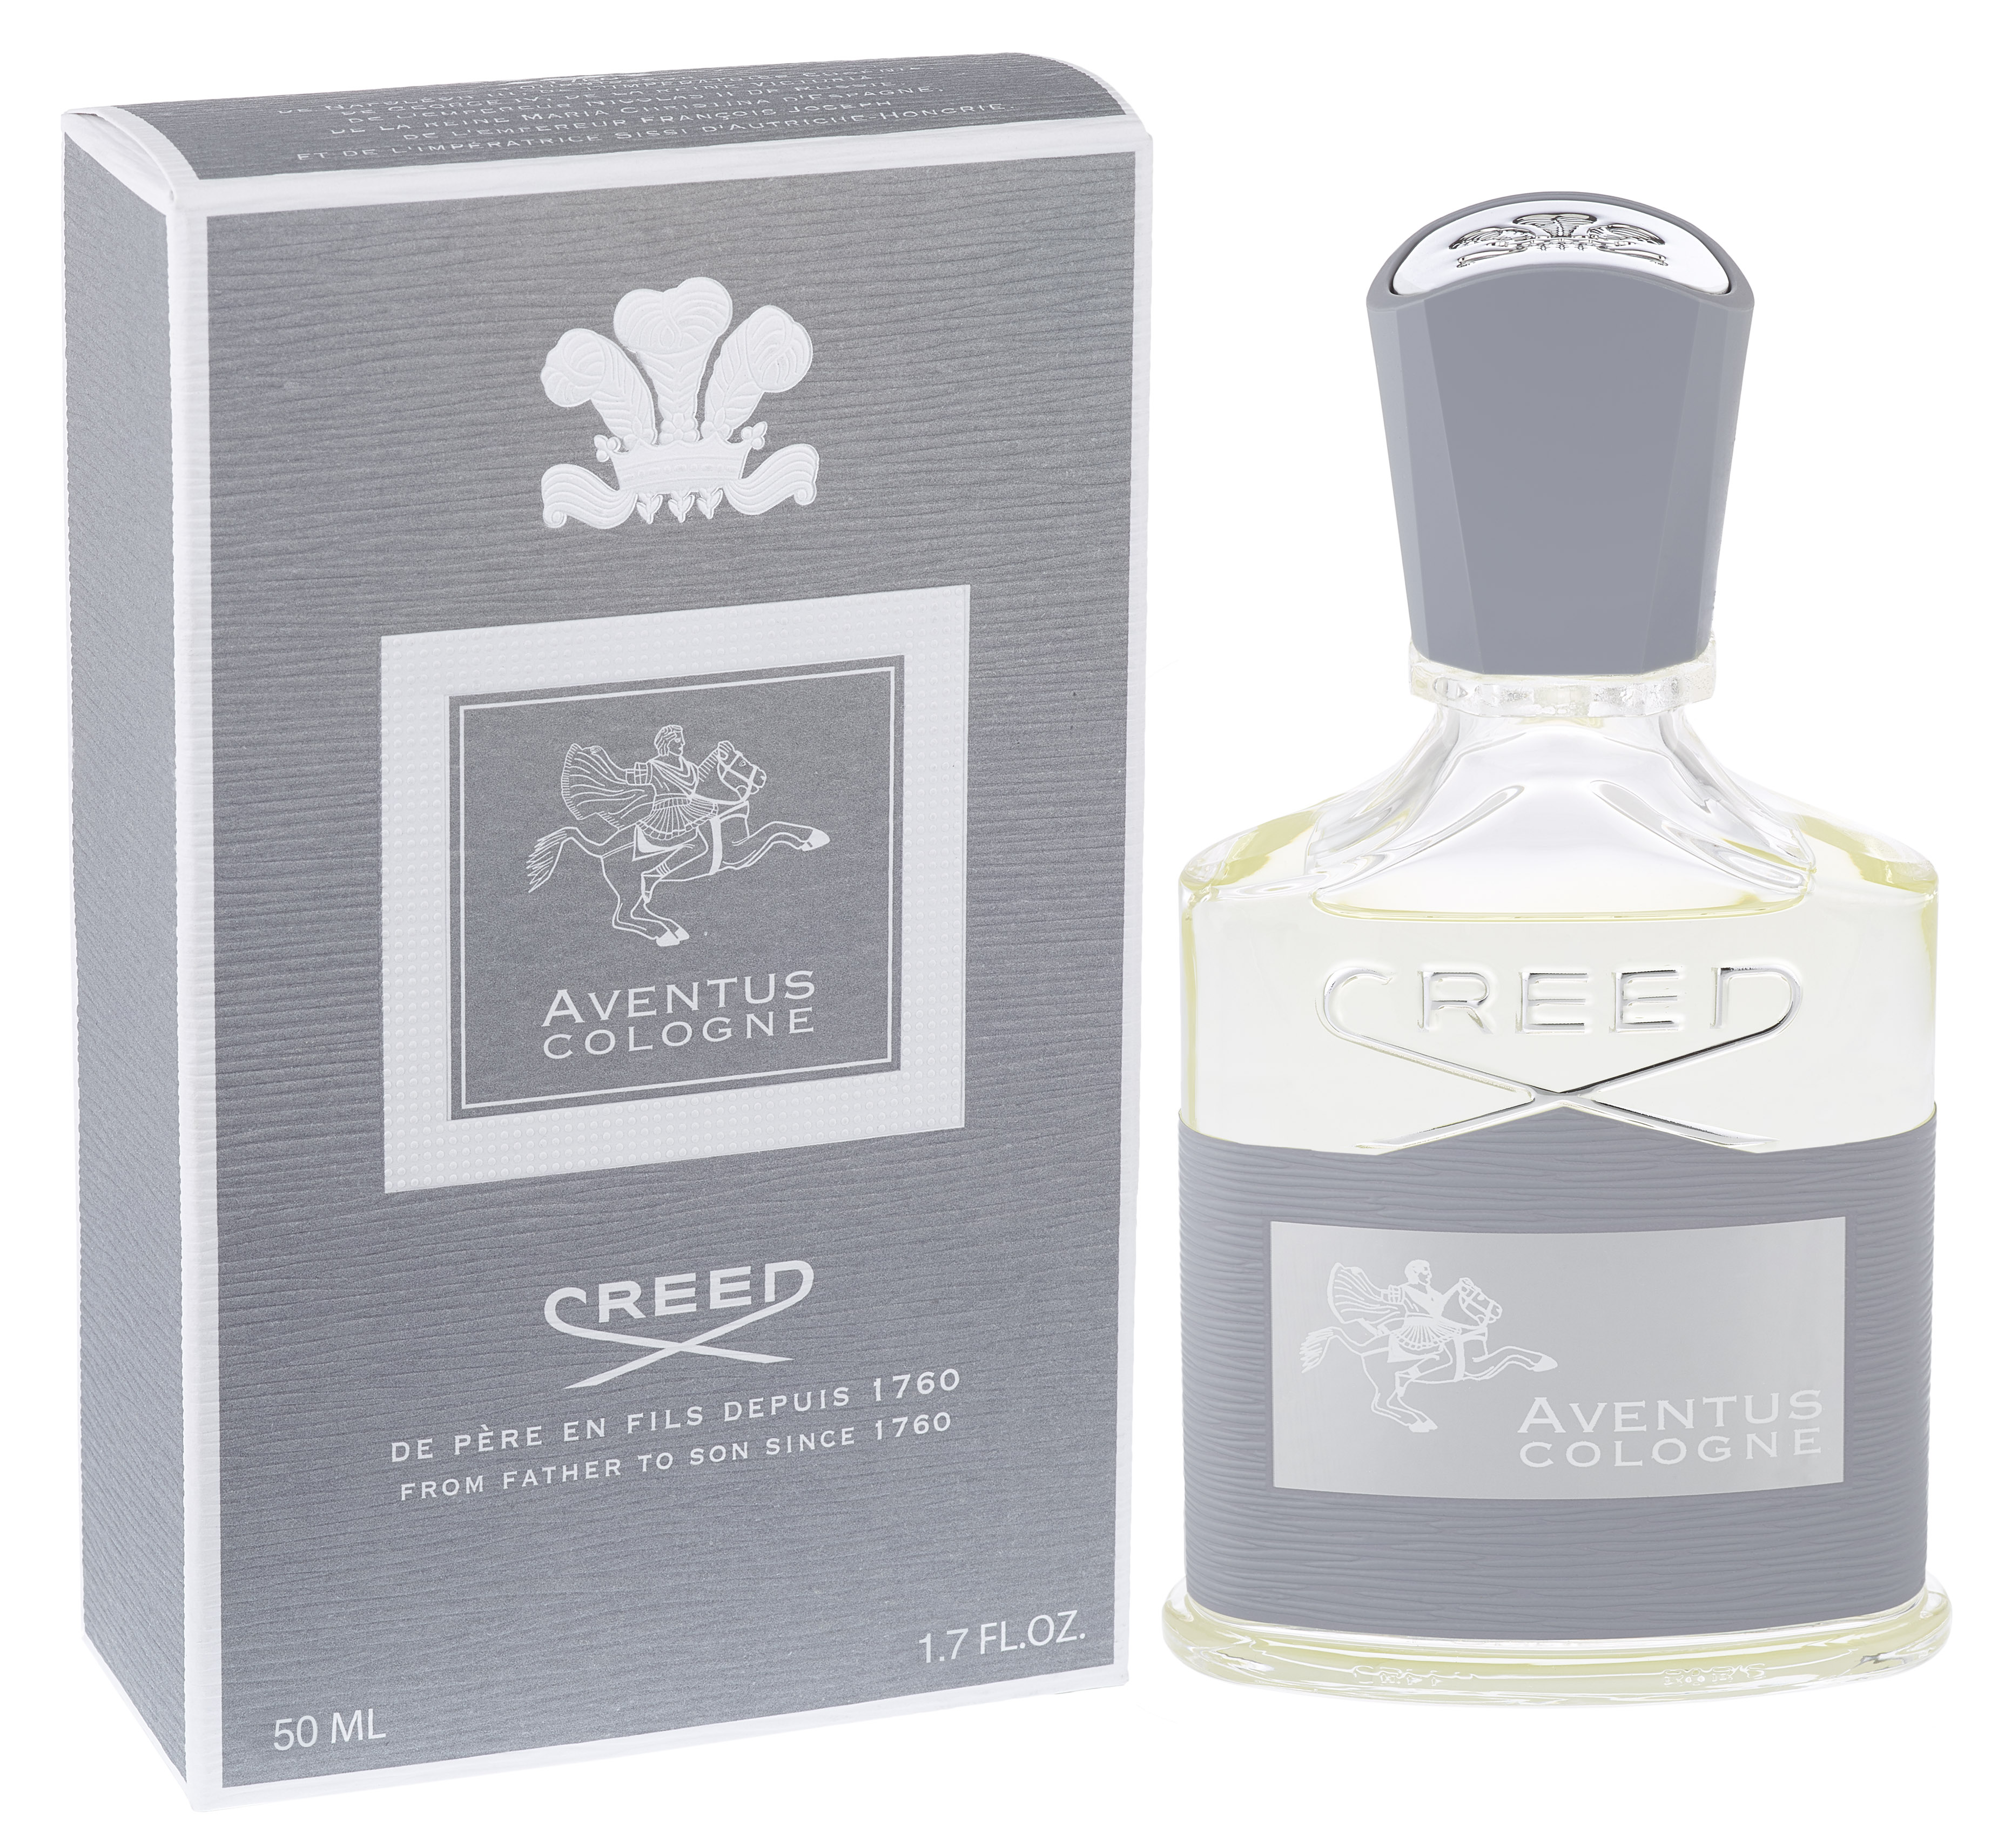 Creed Aventus Cologne 50ml